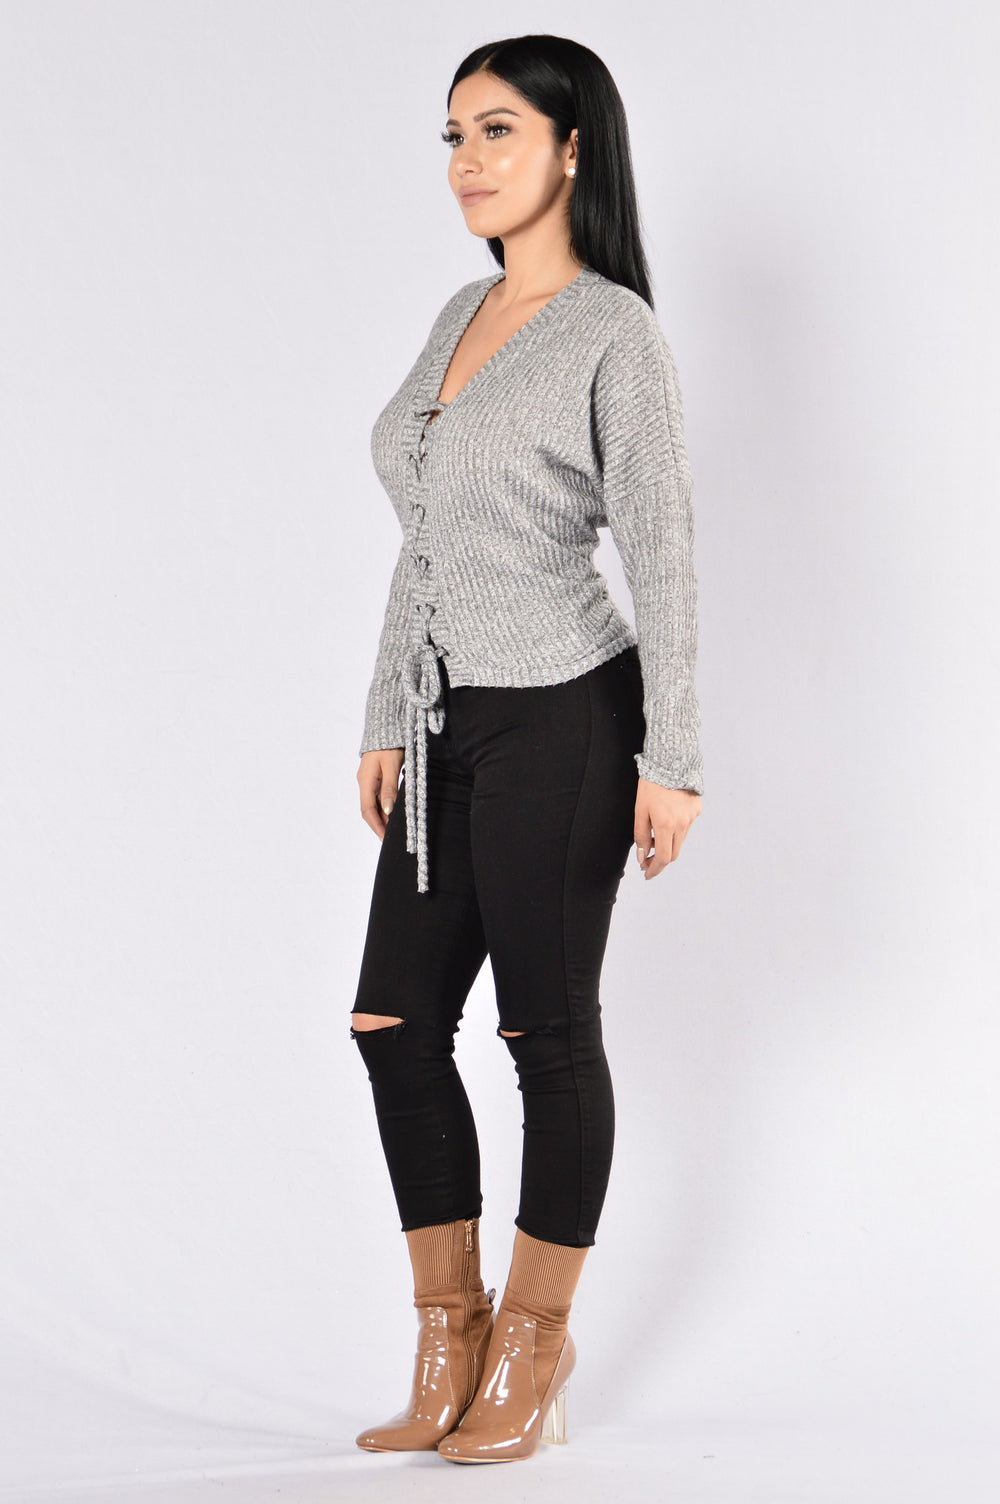 Your Favorite Thing Sweater - Heather Grey